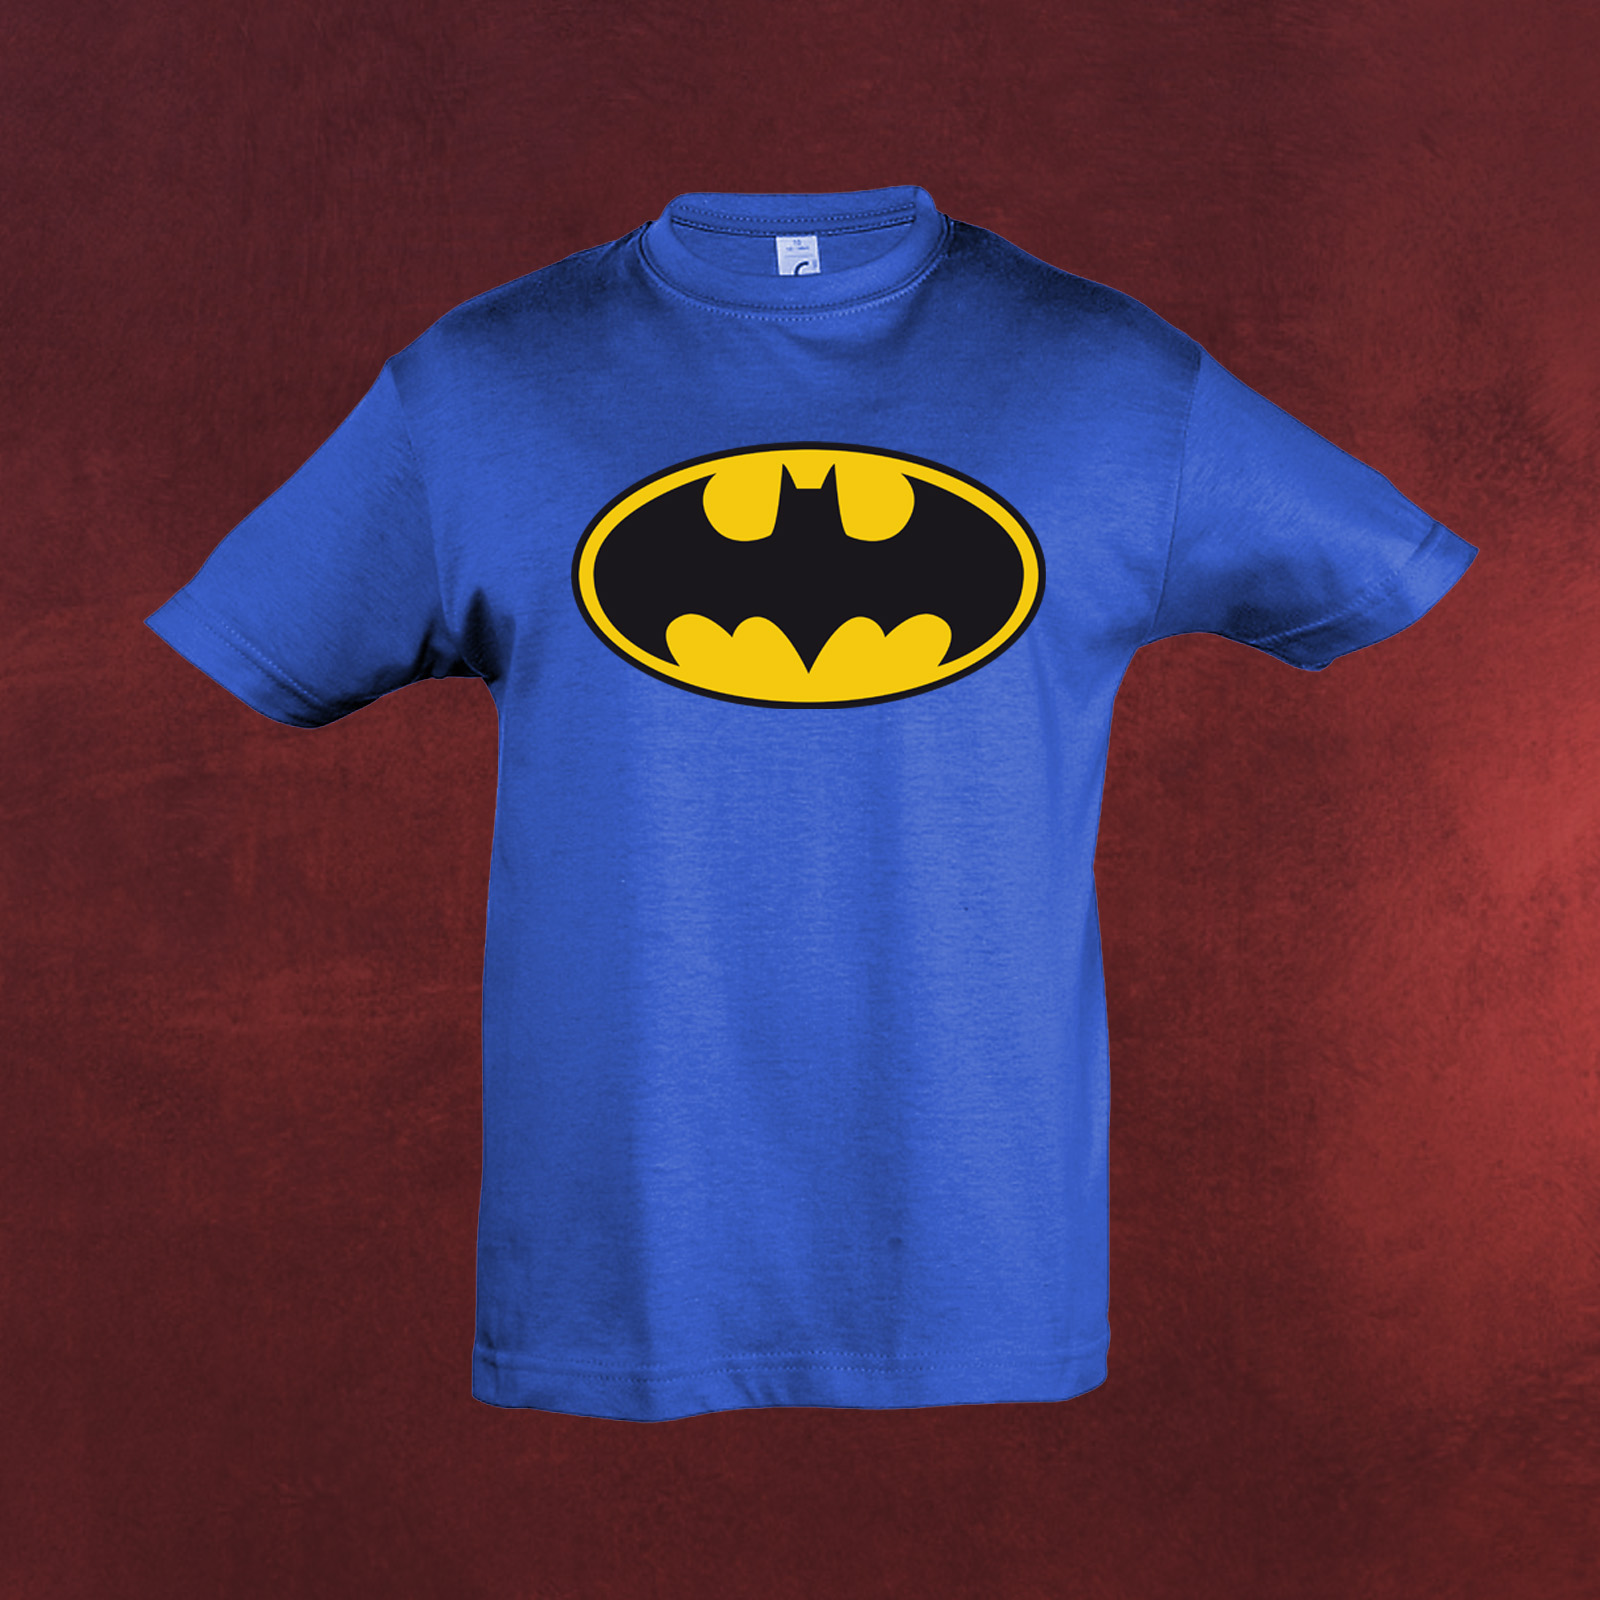 batman logo t shirt kinder lizenziert dc comics f r comic superhelden fans ebay. Black Bedroom Furniture Sets. Home Design Ideas